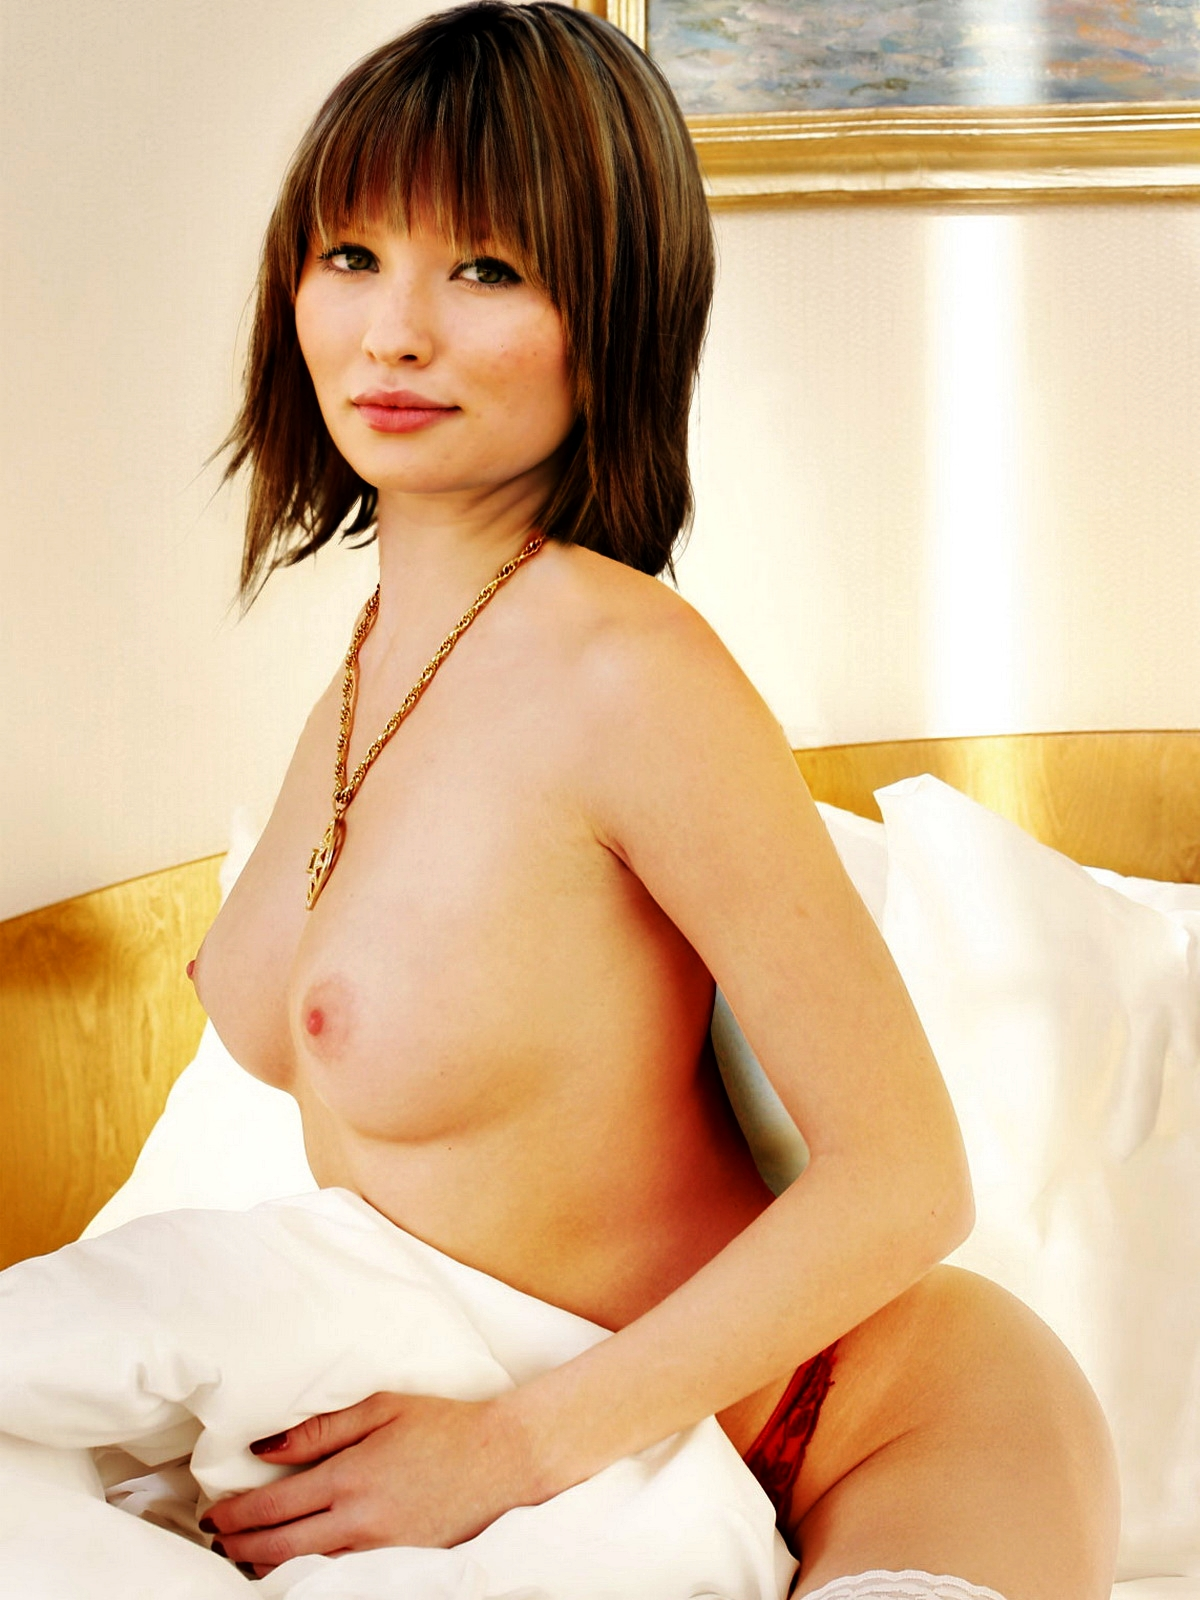 Sucker punch emily browning nude